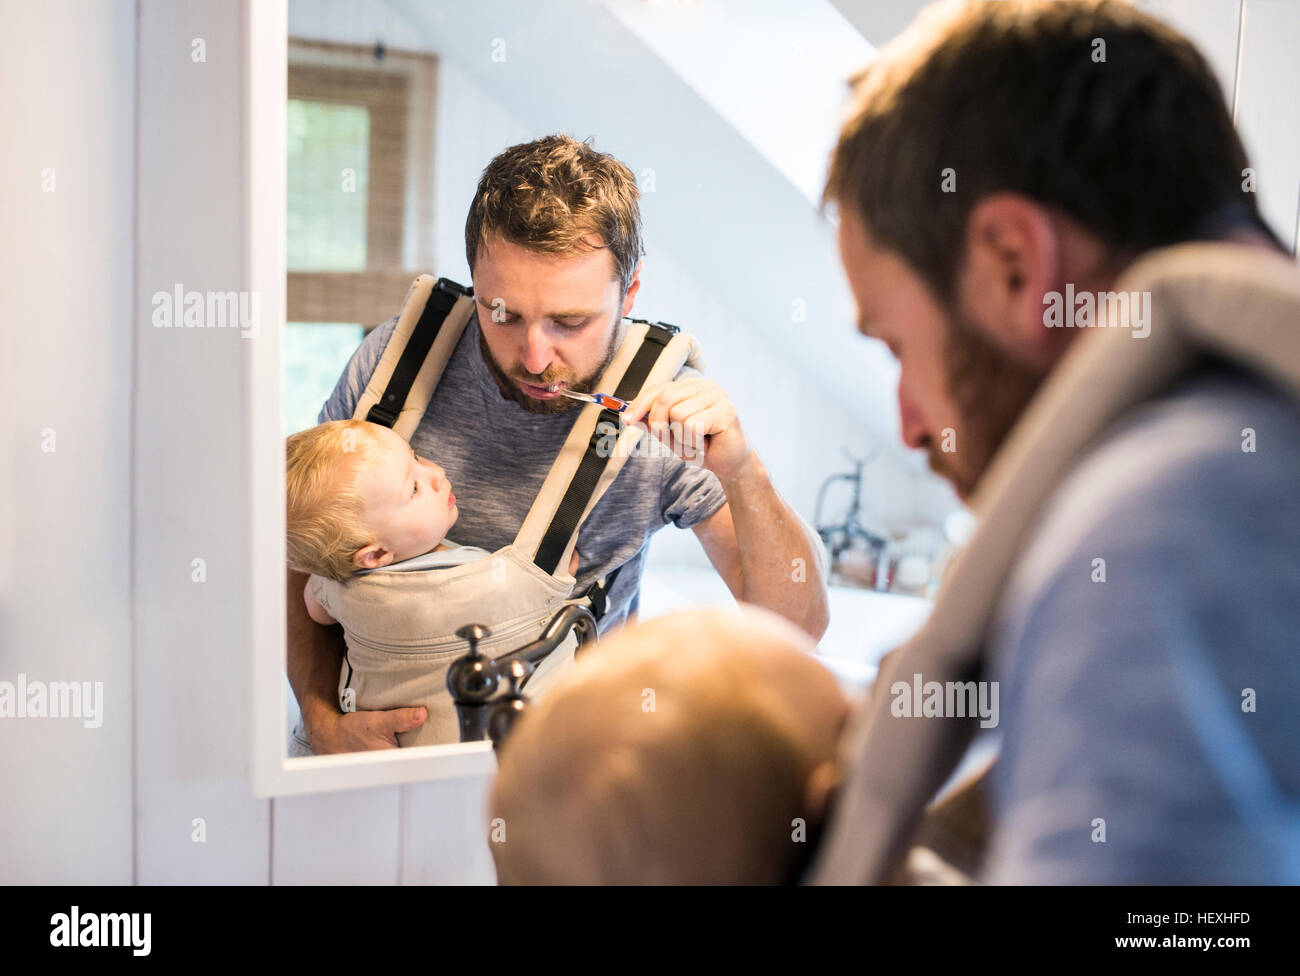 Father with baby in baby carrier brushing his teeth - Stock Image